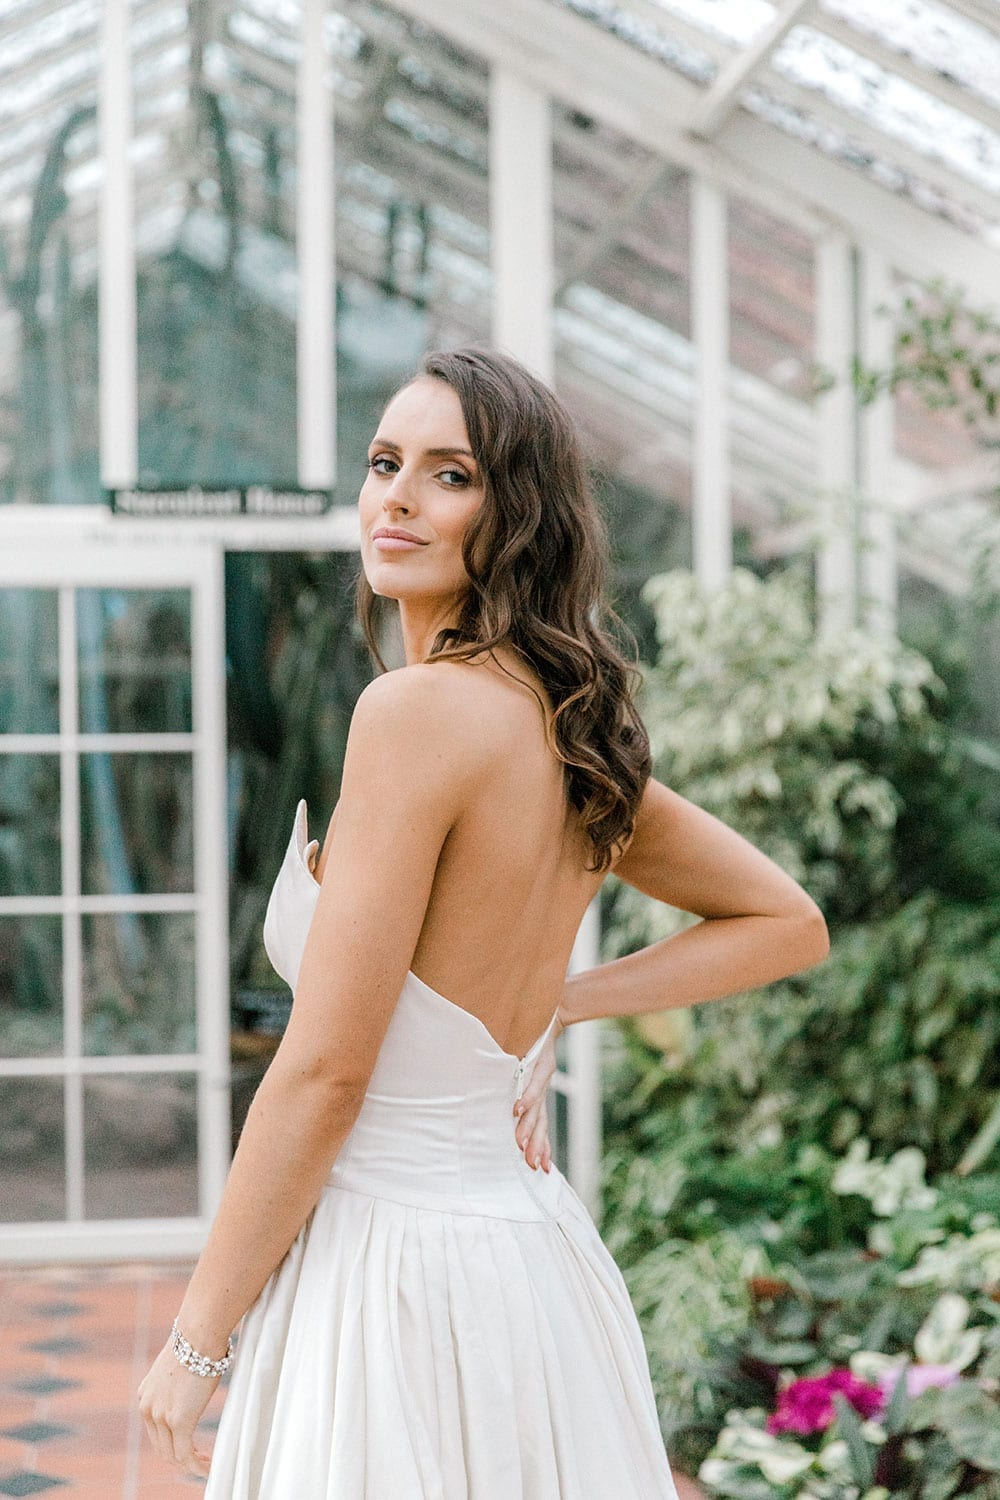 Model wearing Vinka Design Germaine Wedding Dress, a strapless dramatic wedding dress with split in a botanical garden greenhouse close up looking over shoulder